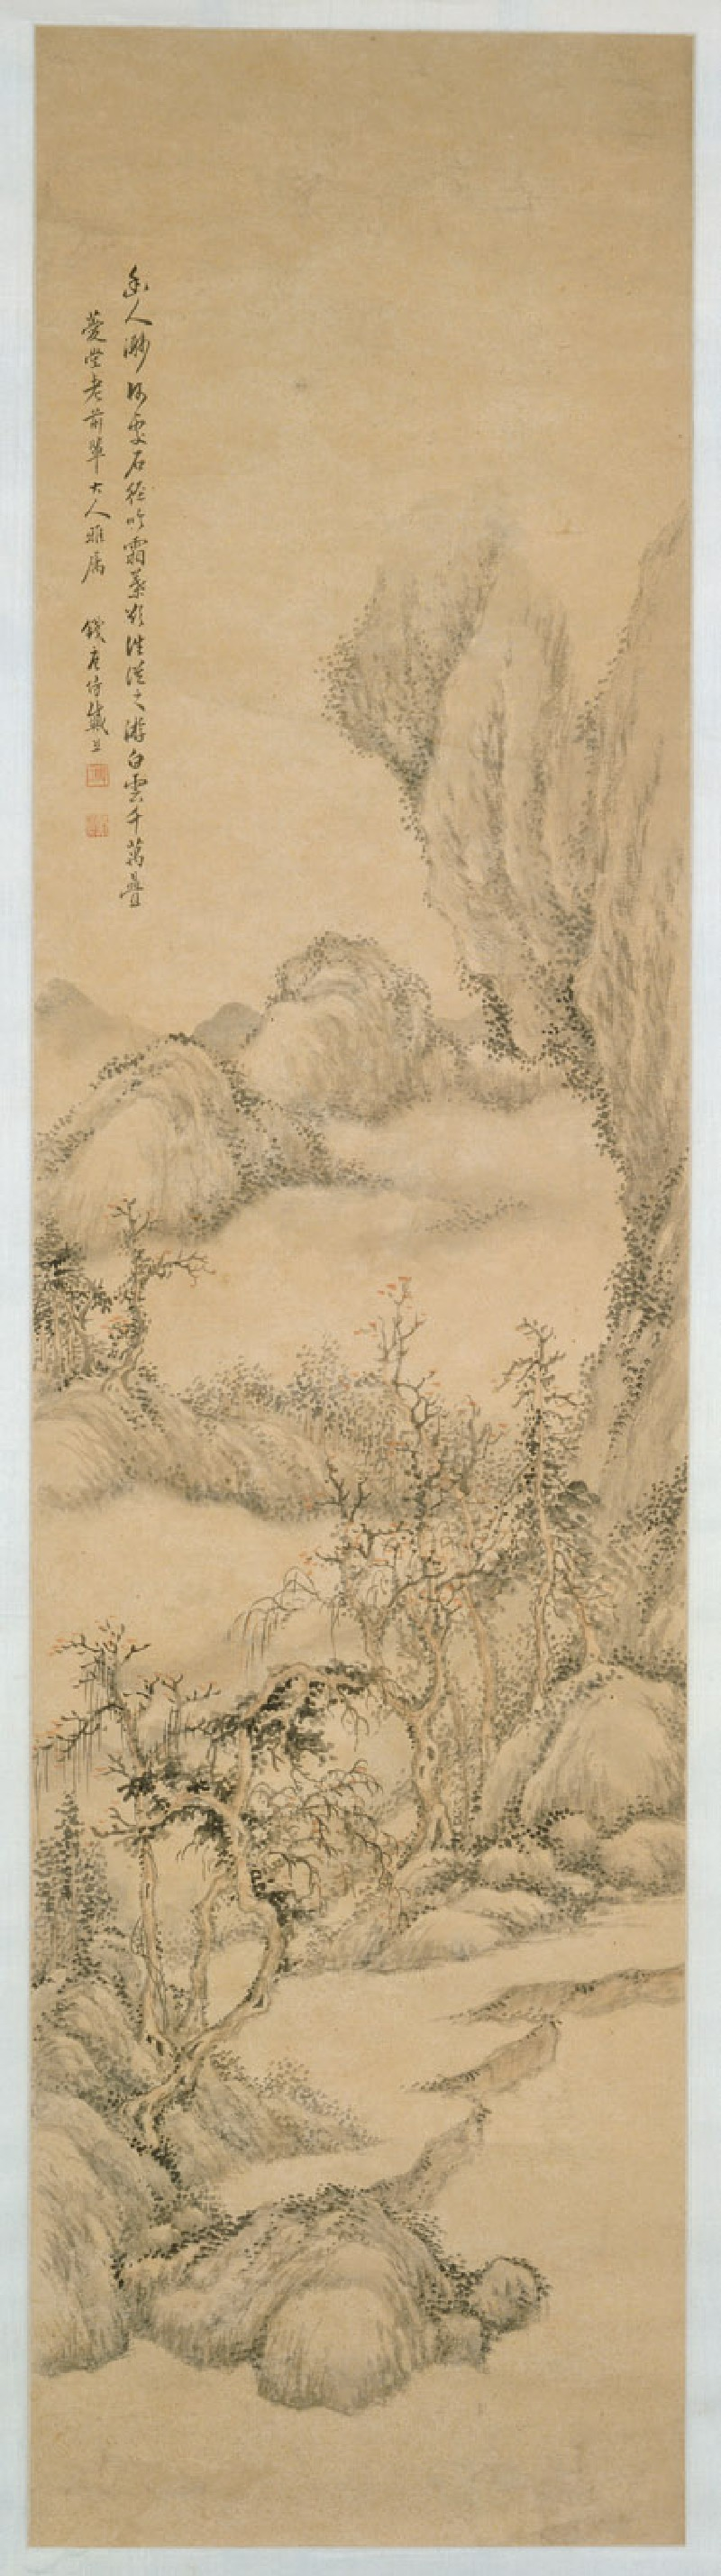 Landscape with trees and rocks (EA1991.189, front            )